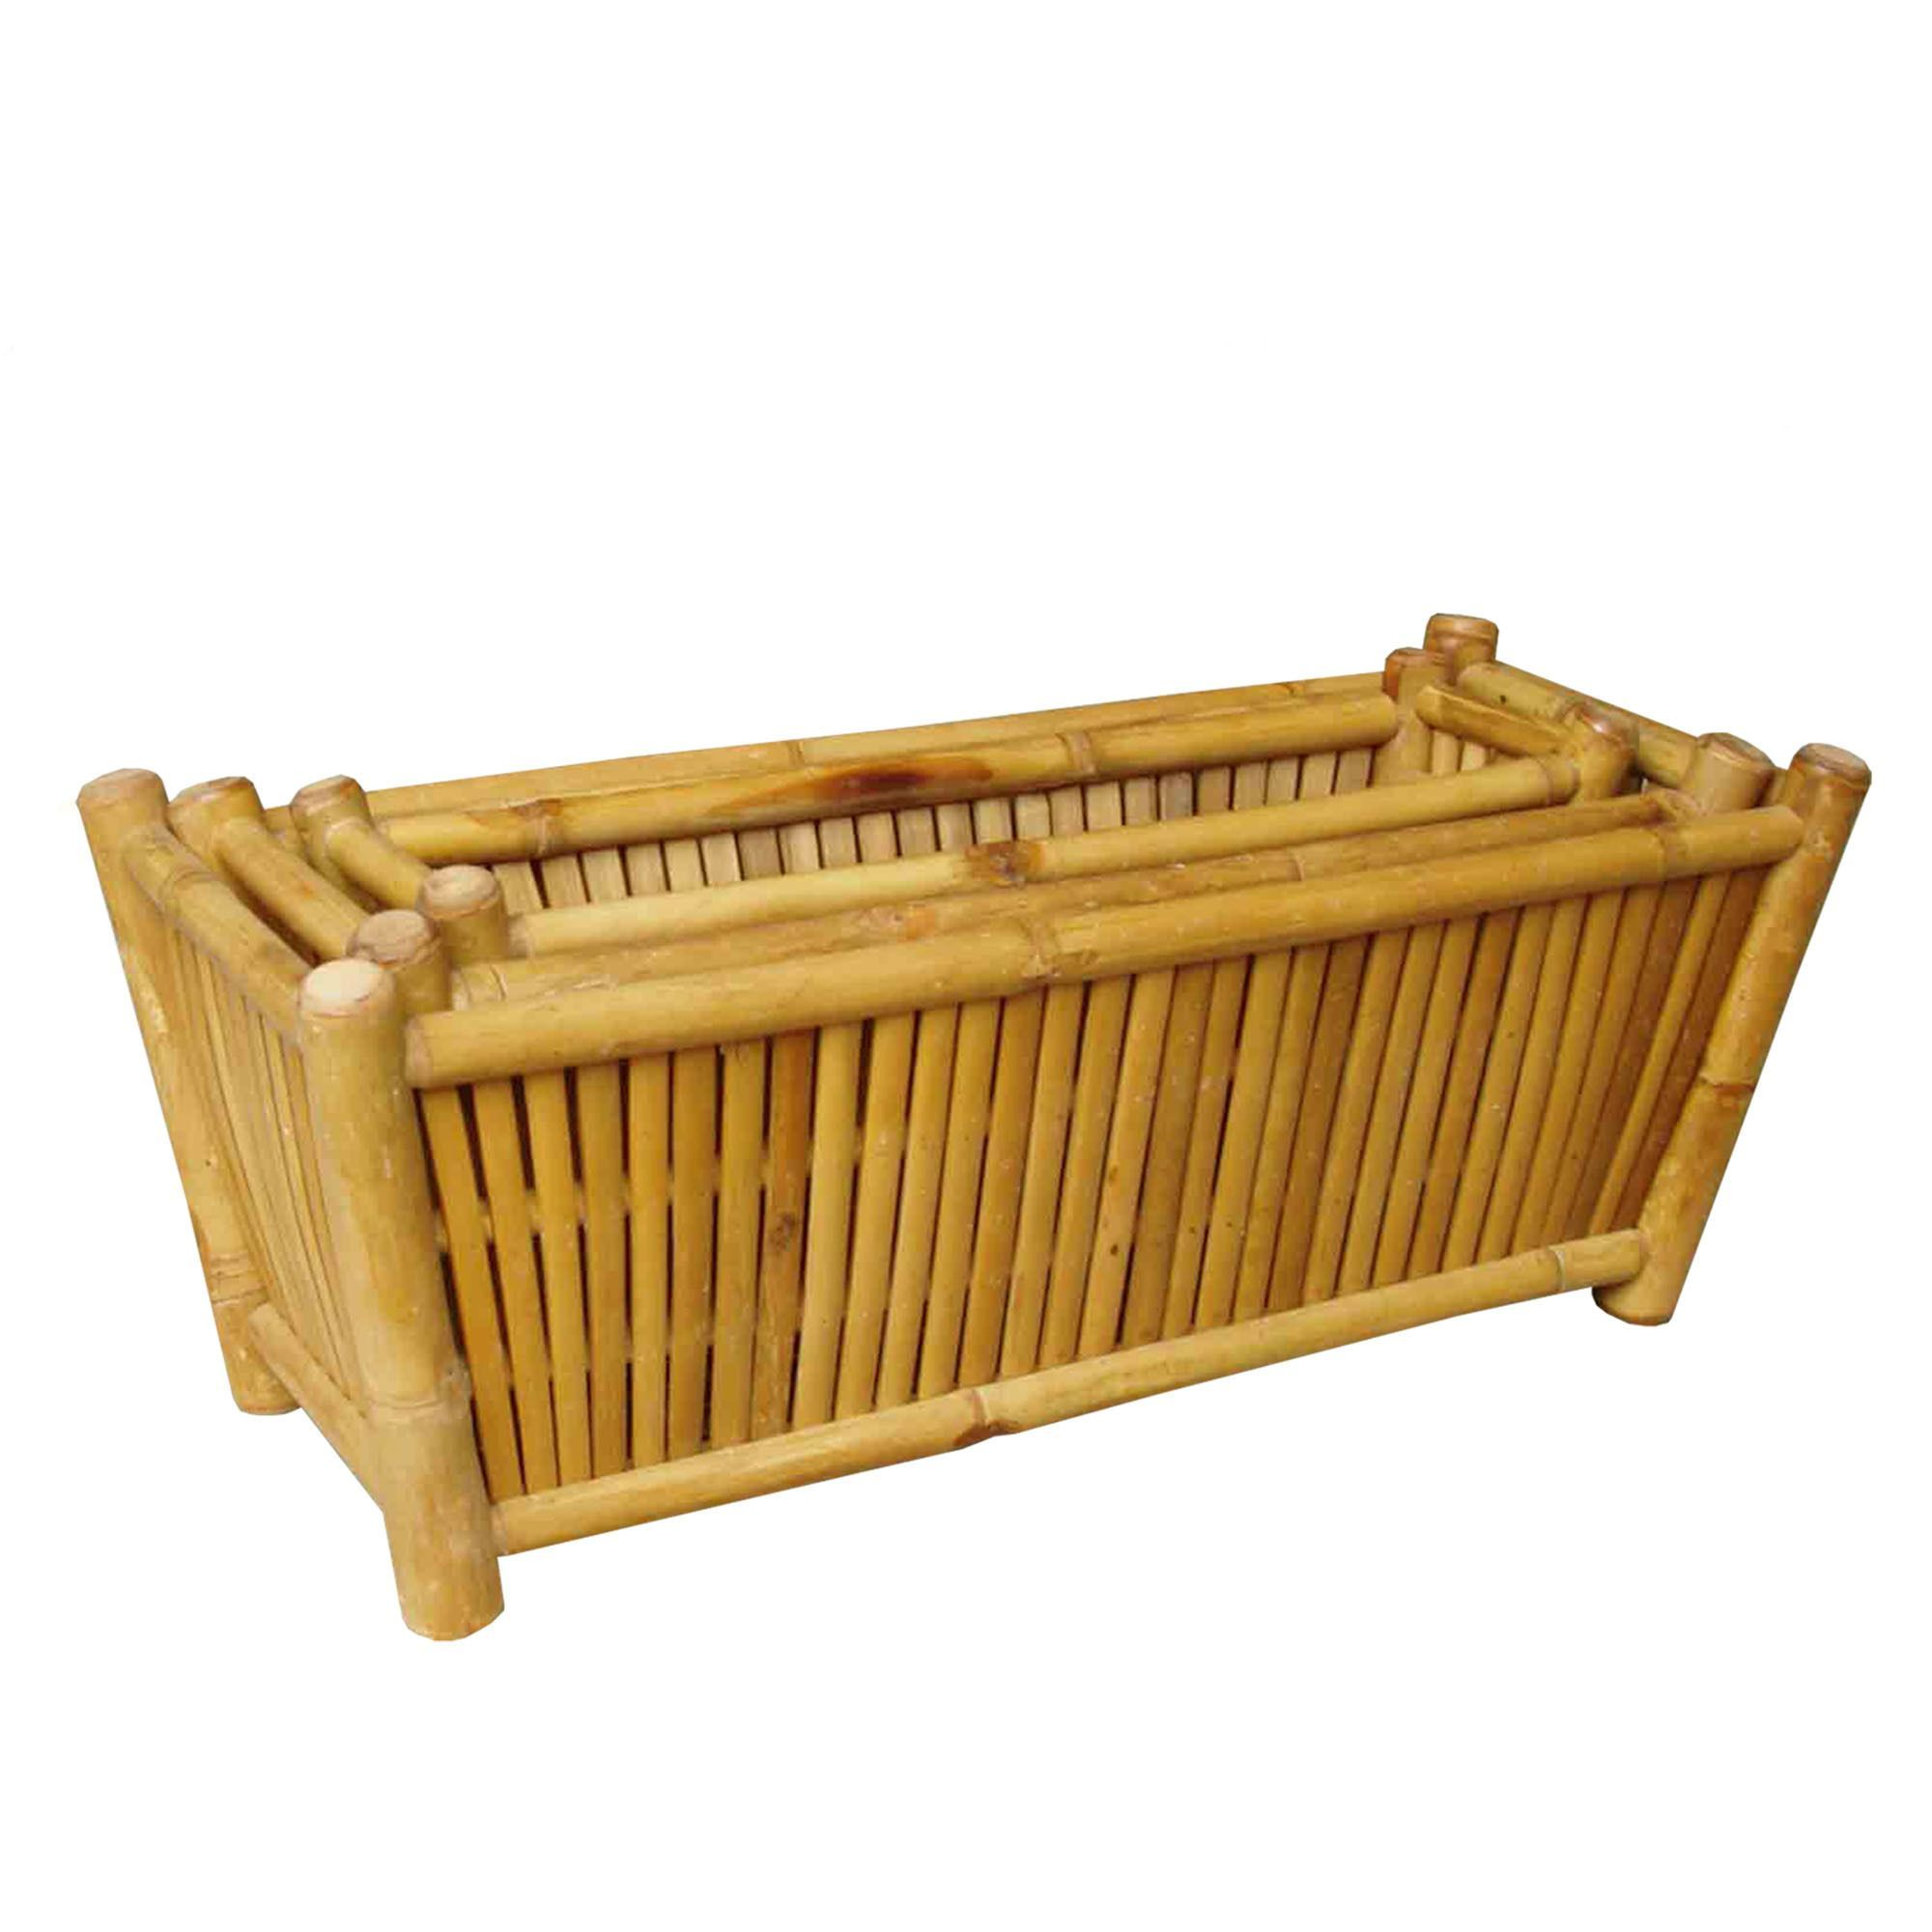 pin planter with bamboo silverware ltd david green shaw na decorative